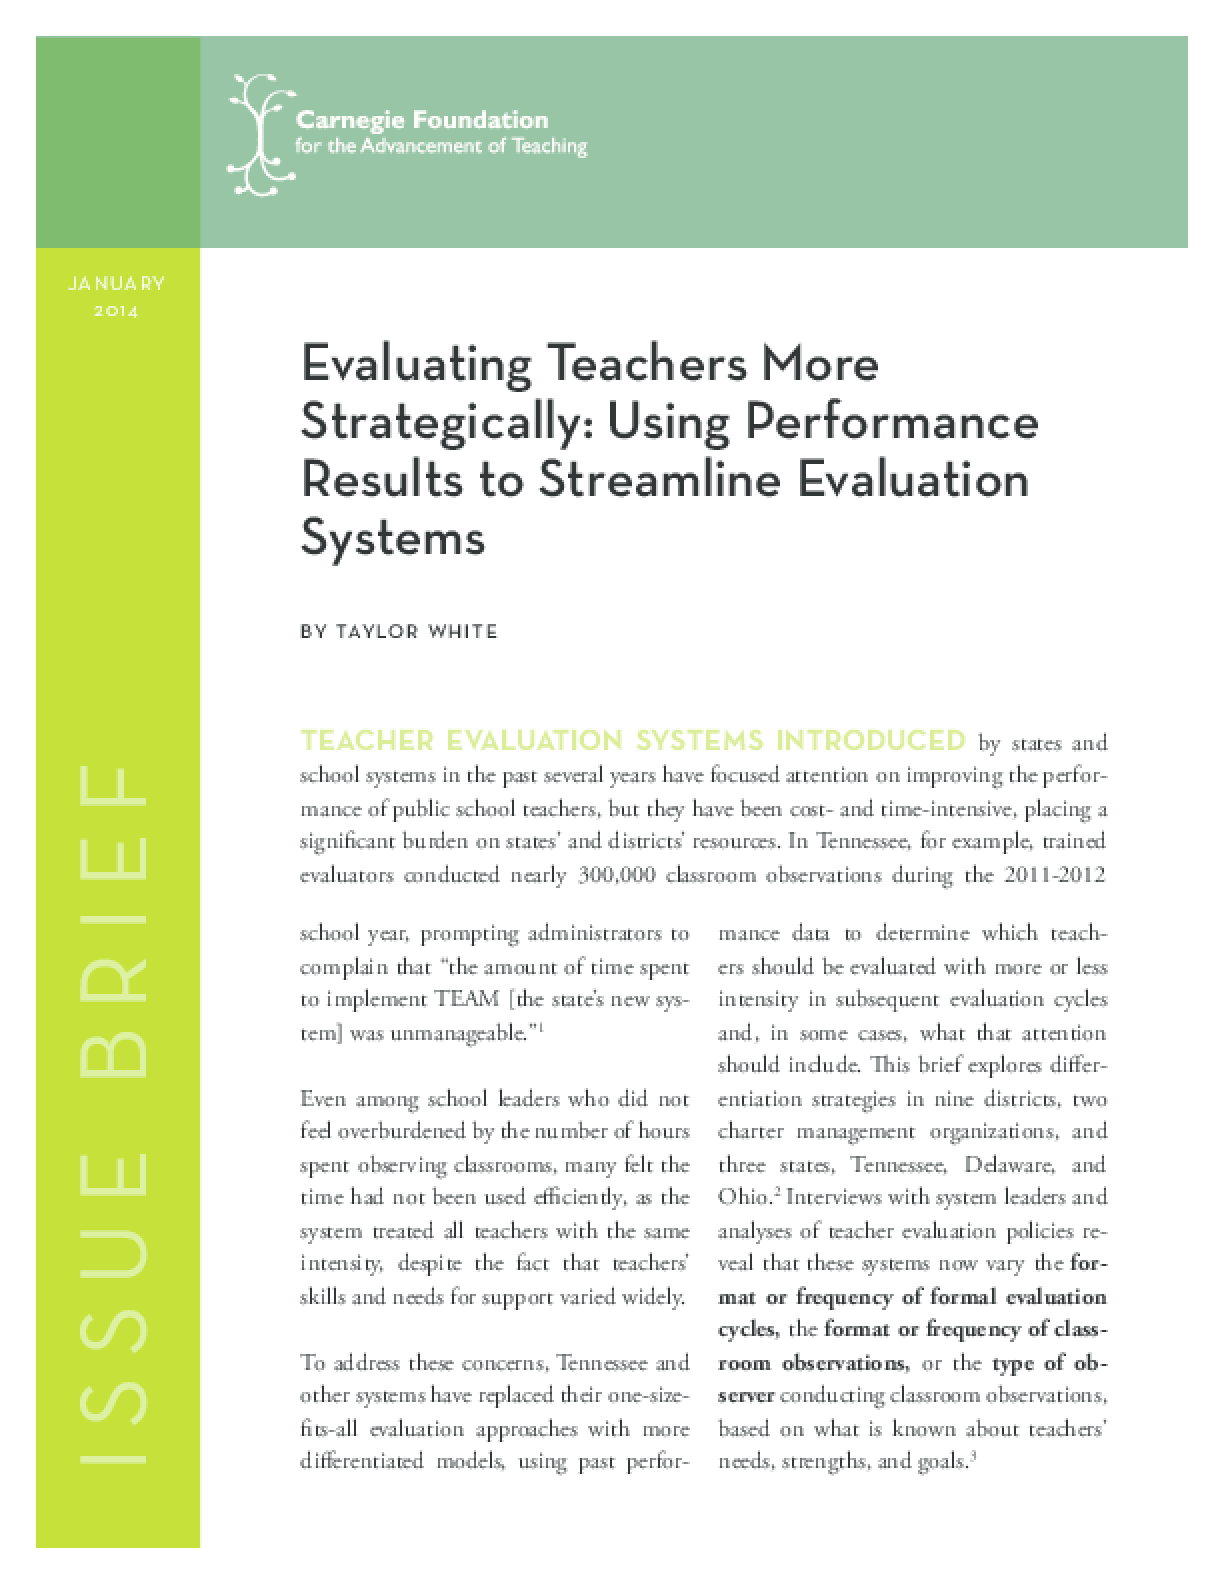 Evaluating Teachers More Strategically: Using Performance Results to Streamline Evaluation Systems